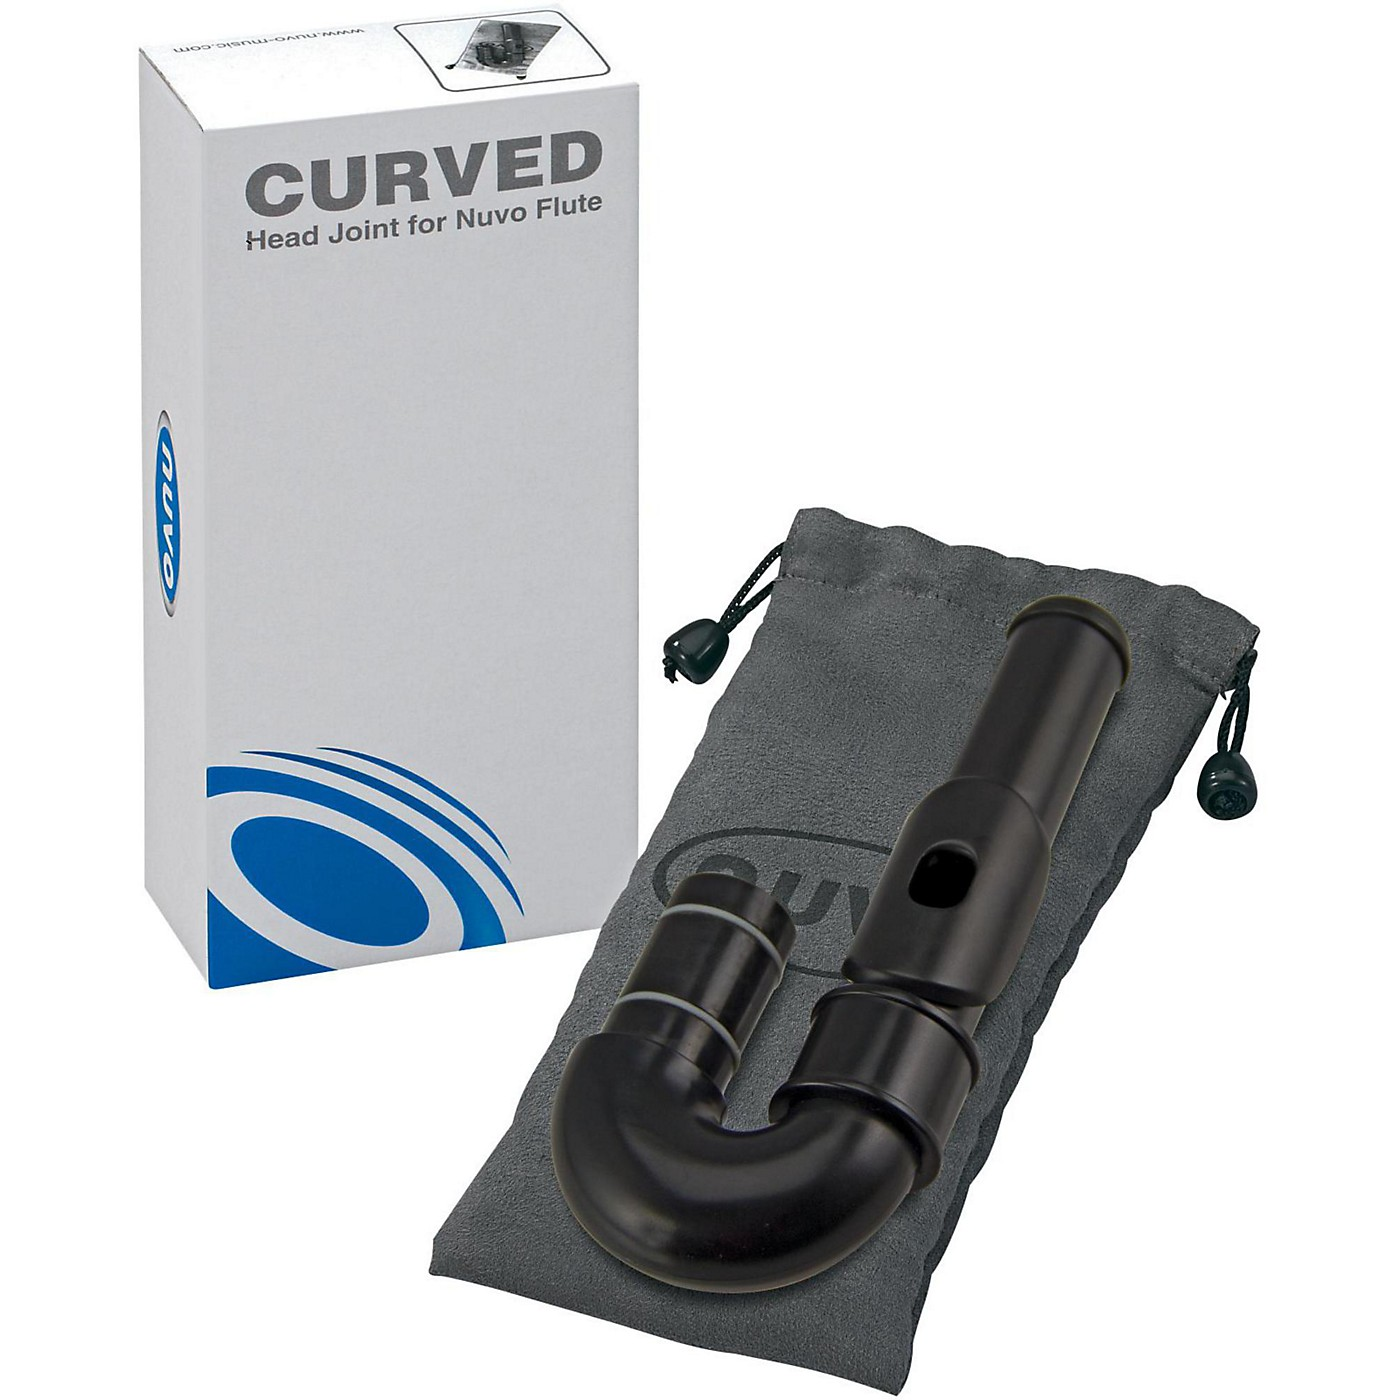 Nuvo Flute Curved Head Joint thumbnail